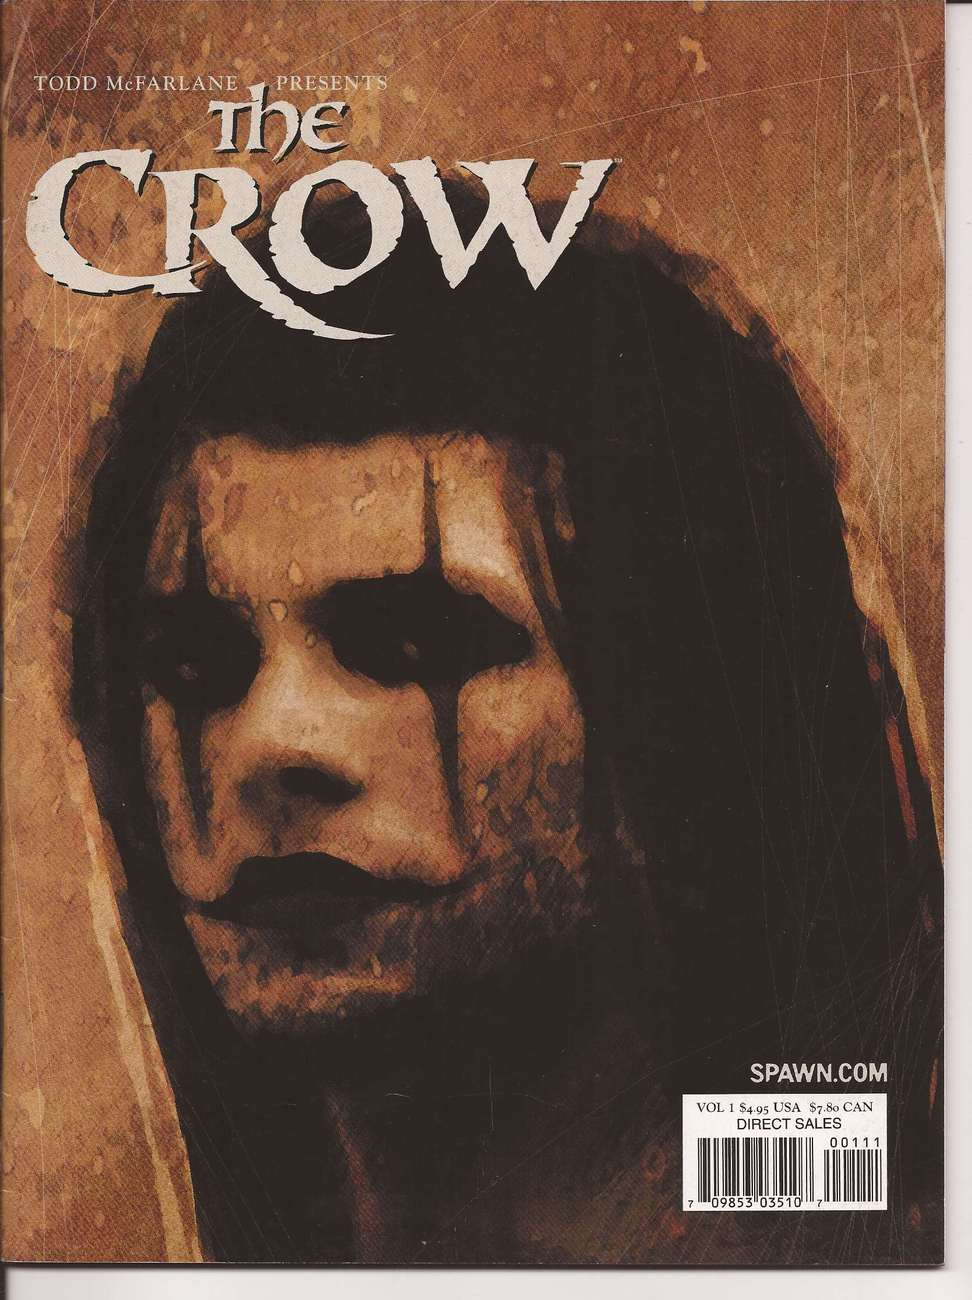 Todd McFarlane Presents The Crow V1 James O'Barr Interview History Of The Crow